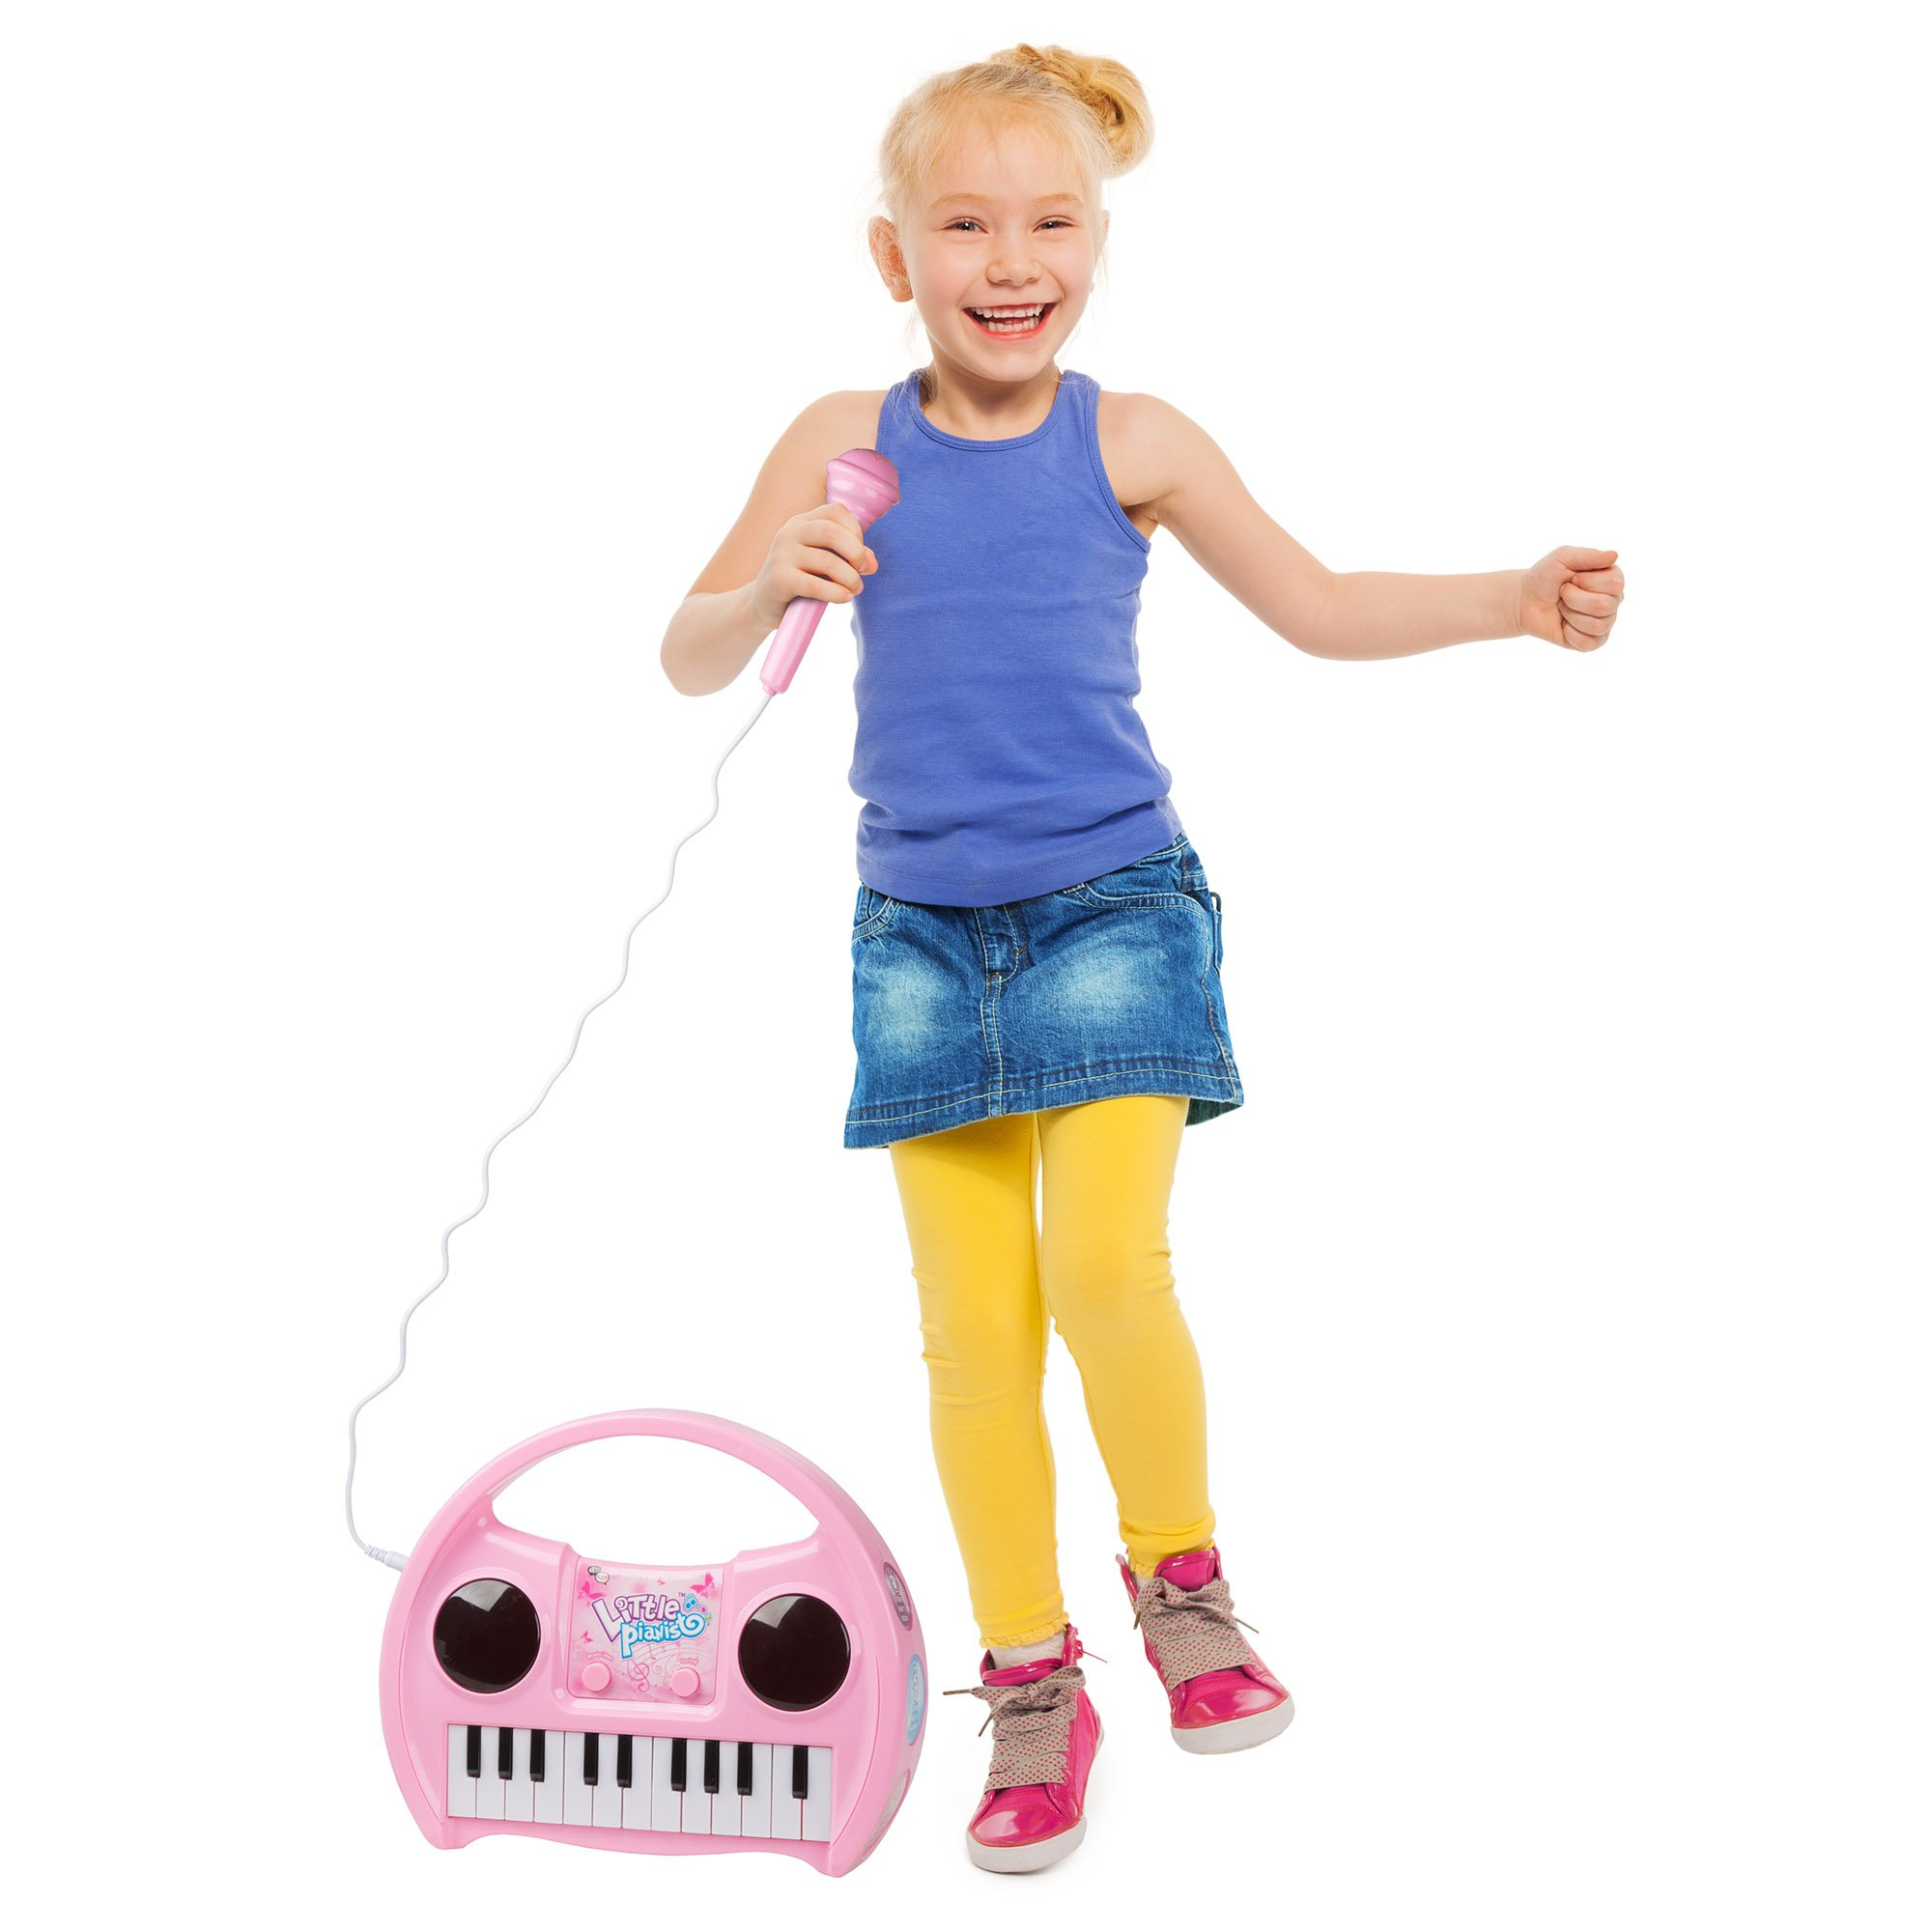 Kids Karaoke Machine with Microphone, Includes Musical Keyboard & Lights - Battery Operated Portable Singing Machine for Boys and Girls by Hey! Play! by Hey!Play! (Image #6)